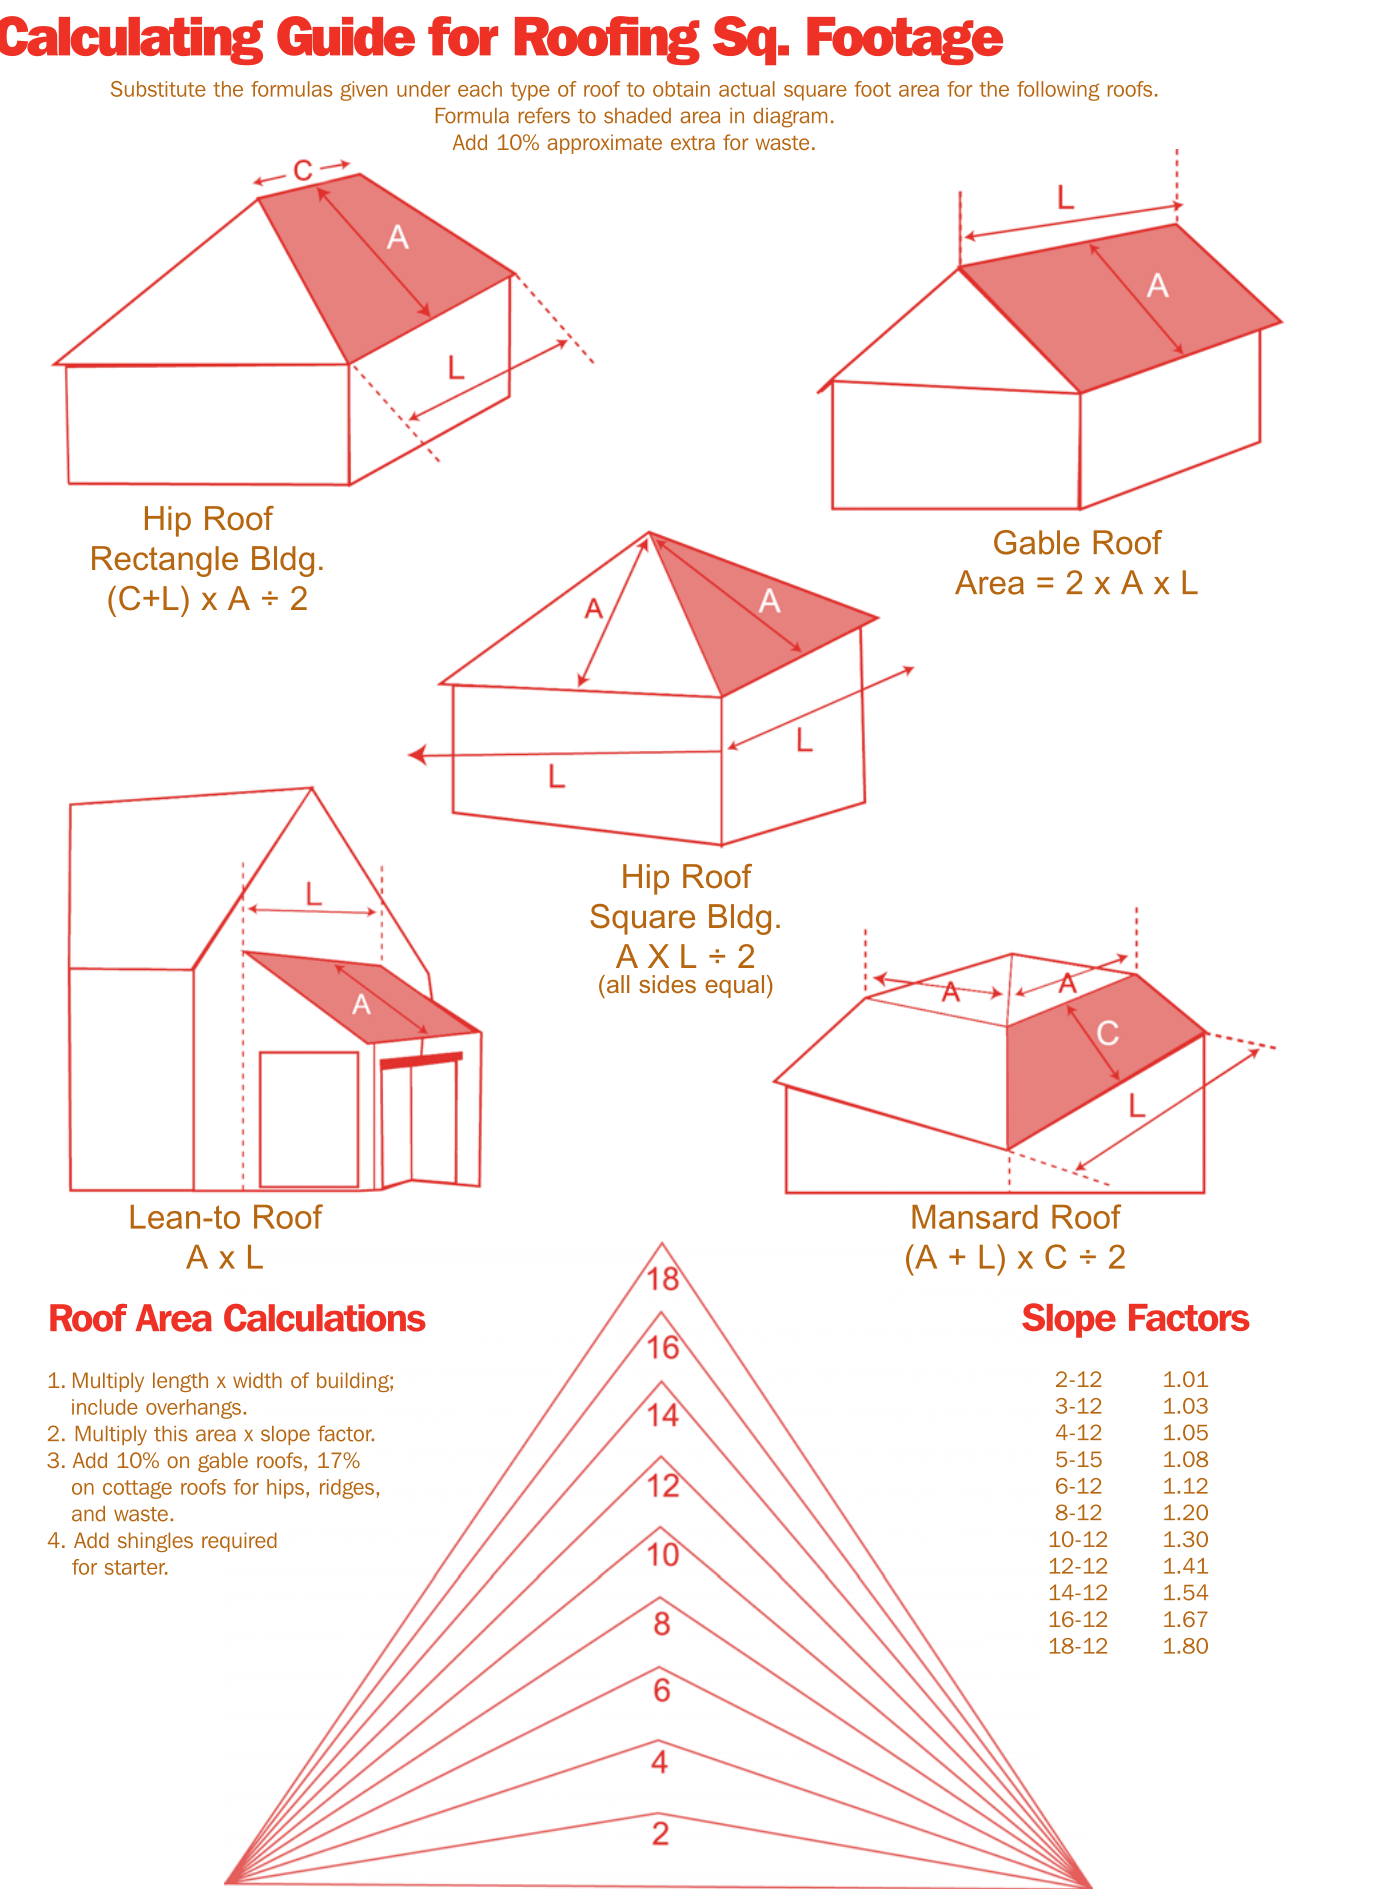 How To Calculate The Number Of Shingles For A Roof In 2020 Roofing Estimate Roof Cost Roofing Calculator